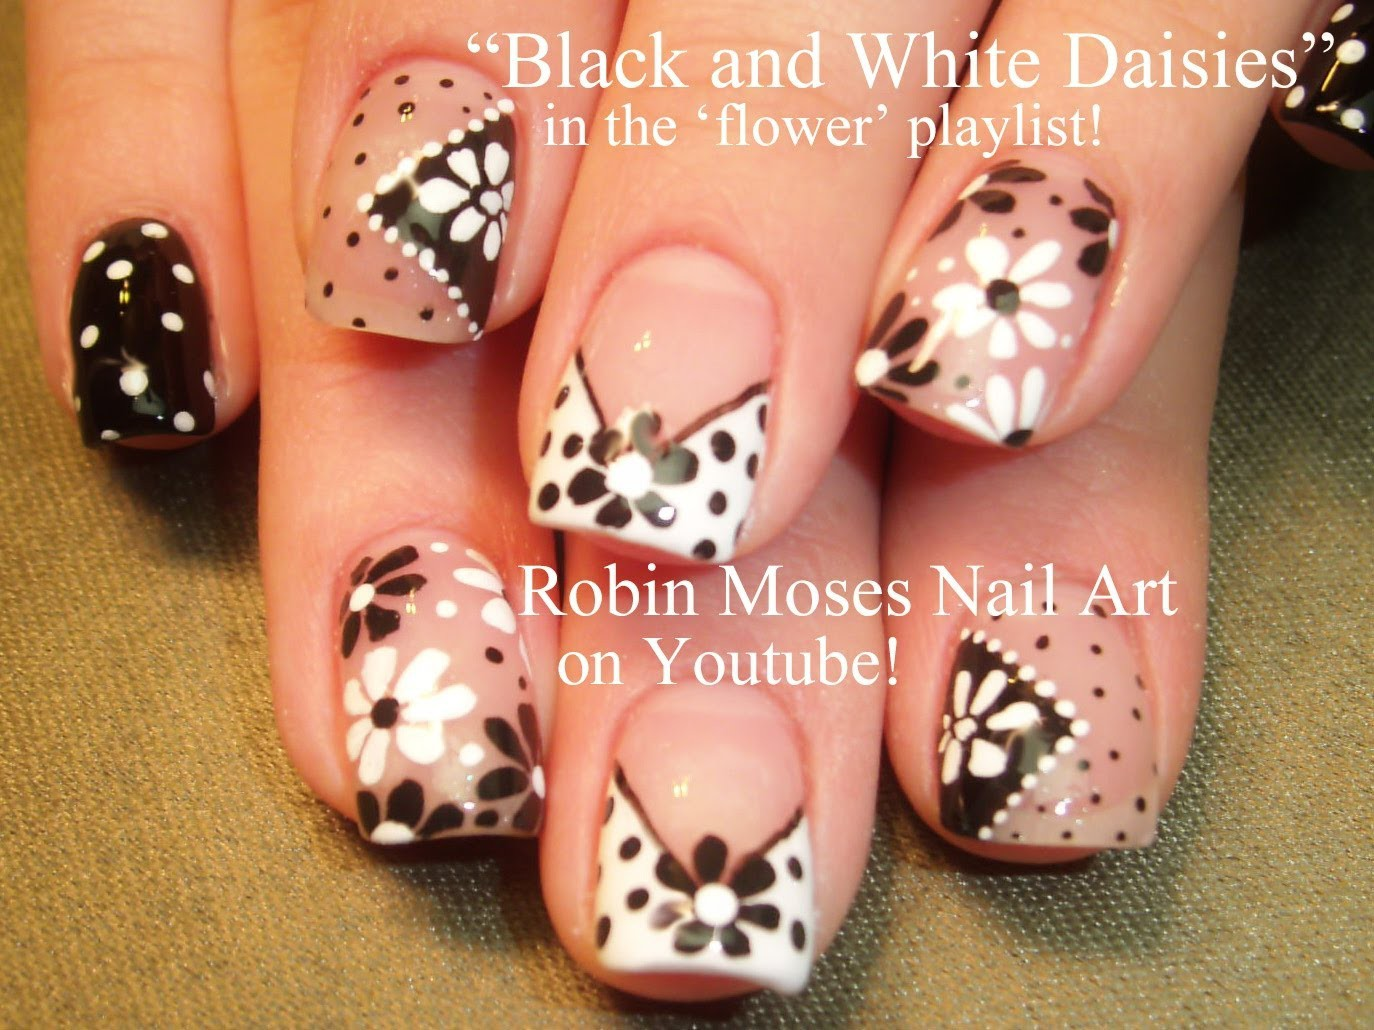 Easy Nail Art for Beginners!!! DIY Flower Nails Design Tutorial